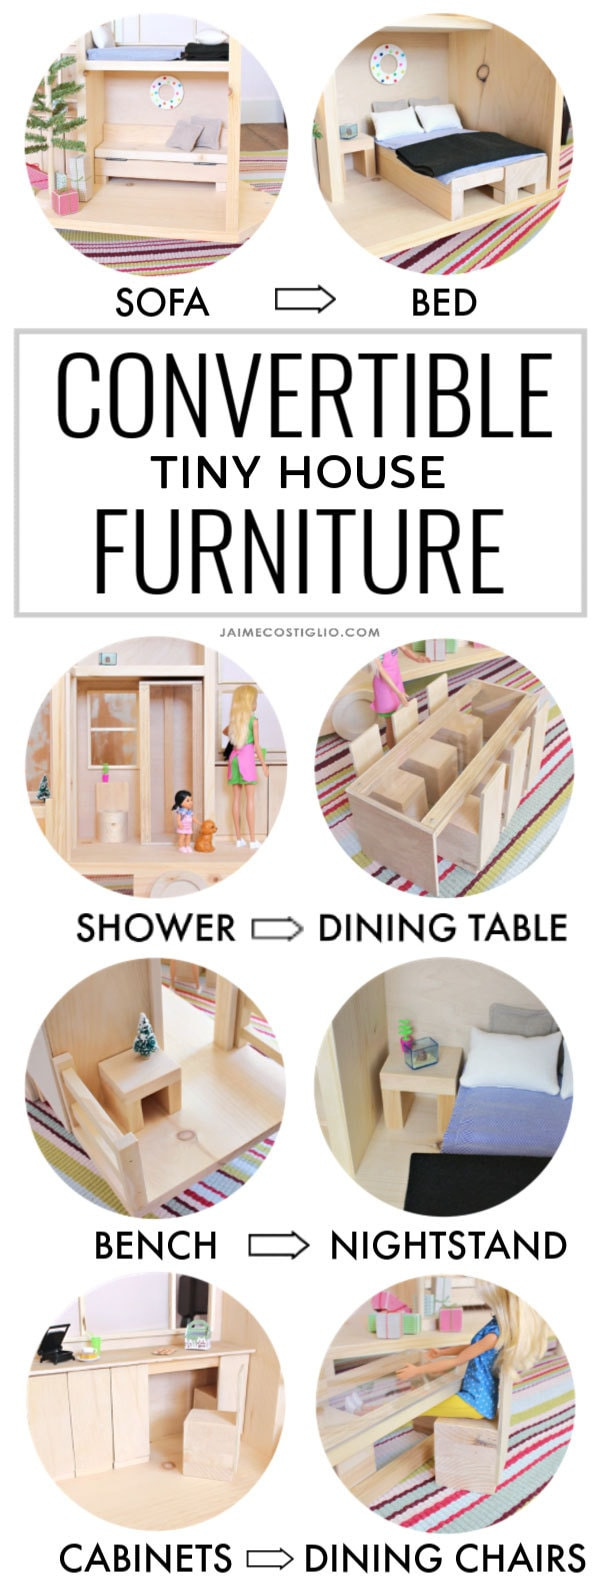 tiny house convertible furniture collage